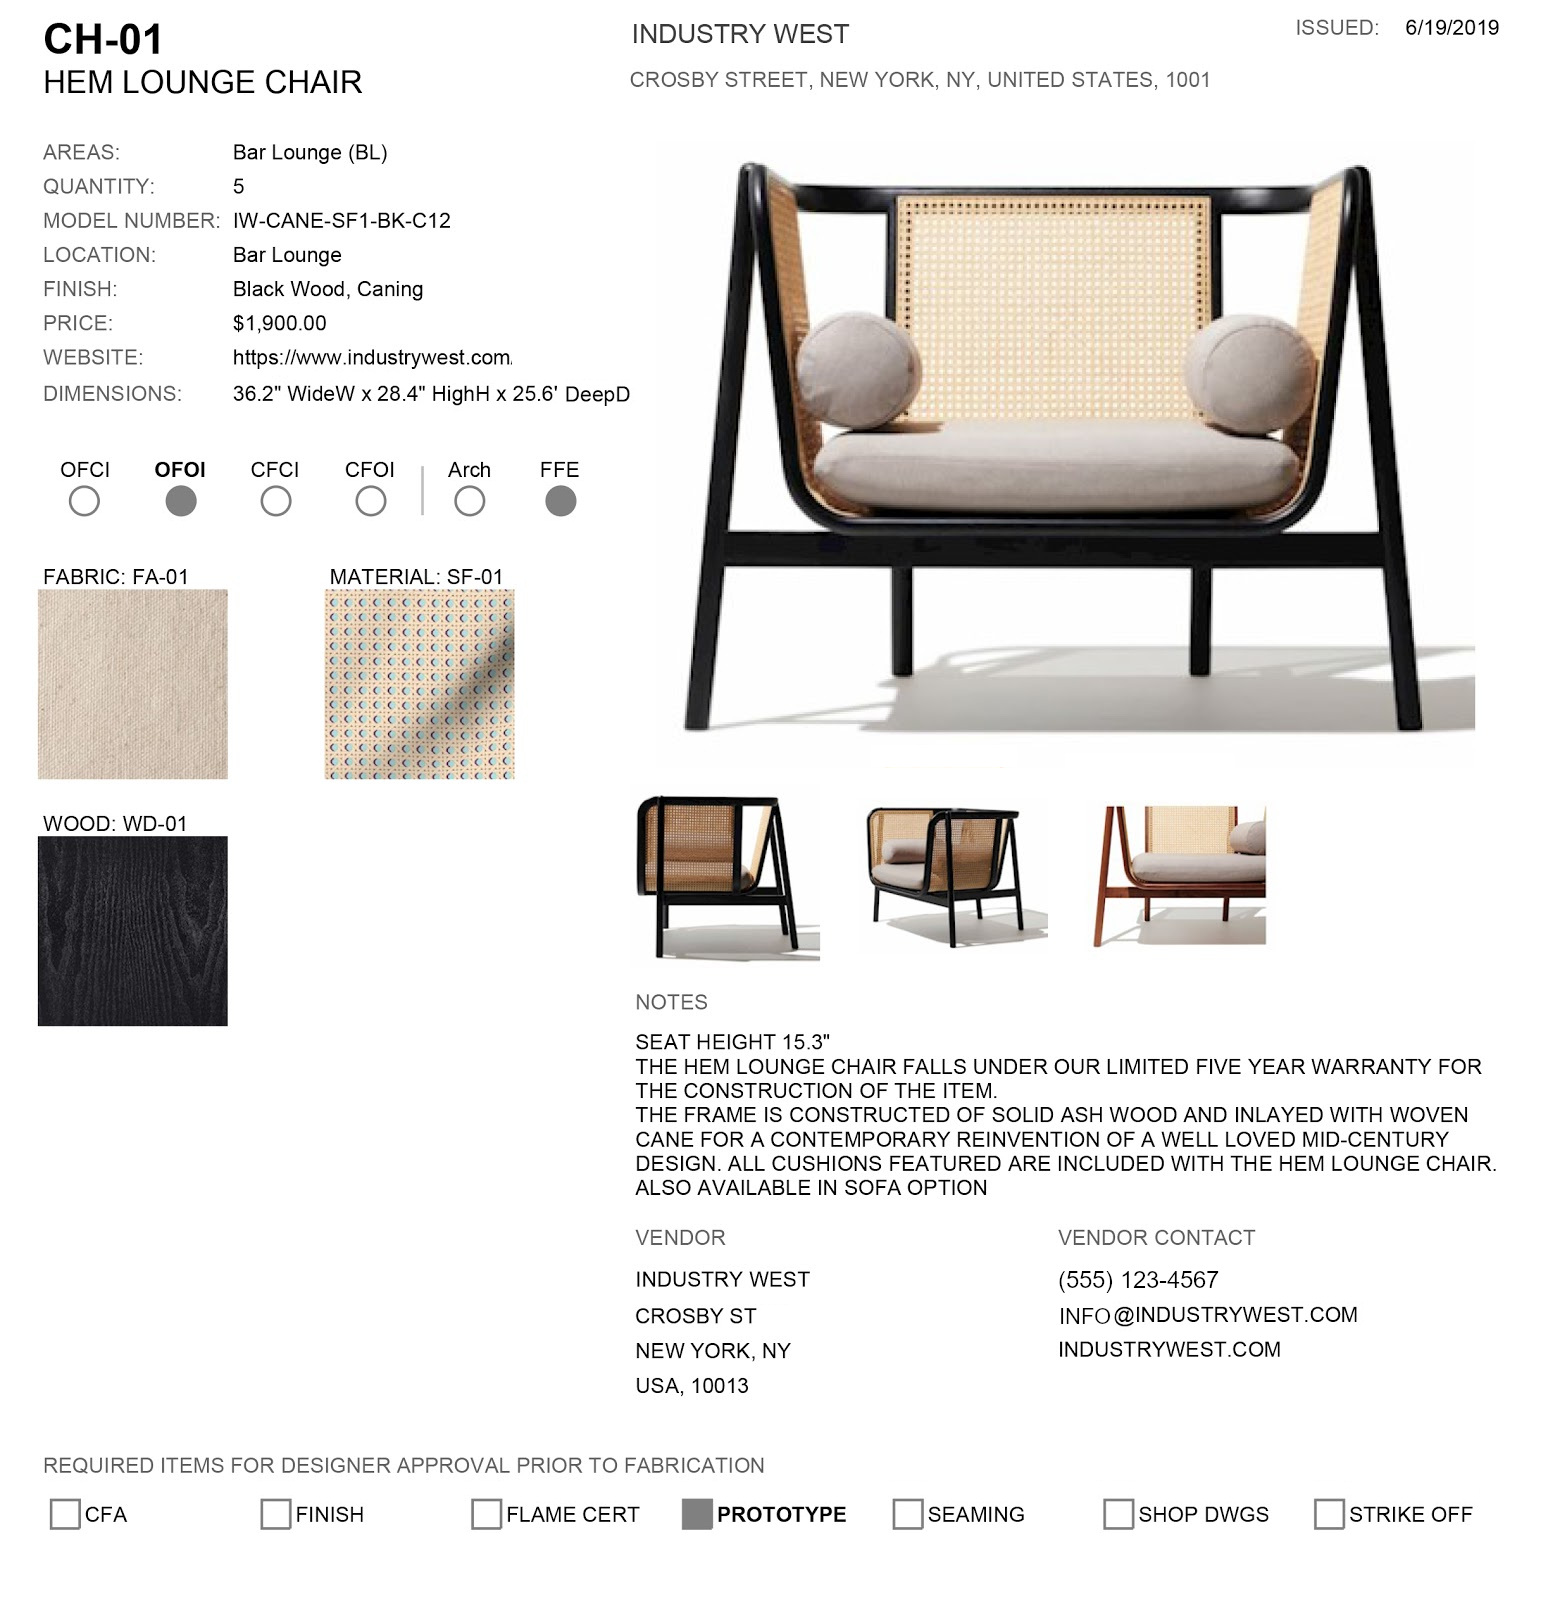 Furniture Specification Sheet Template